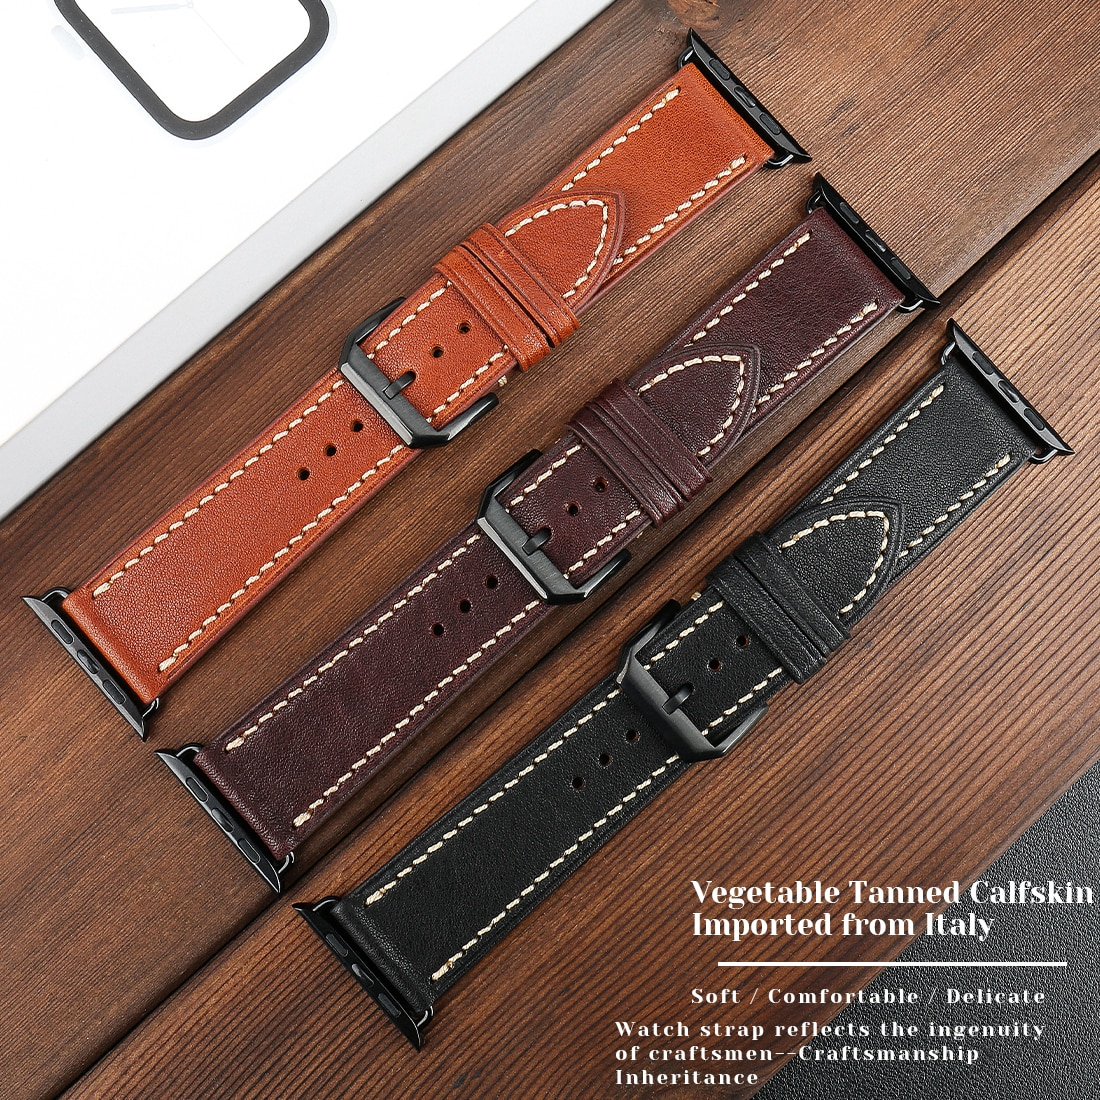 strap for apple watch 6 band 44mm 40mm 42mm 38mm leather replacement strap for iwatch apple se series 6 5 4 3 2 1 bracelet Cowhide Leather Band For Apple Watch 6 5 4 SE Band Business Leather Bracelet 44mm 42mm 40mm 38mm Strap For iwatch Series 3 2 1